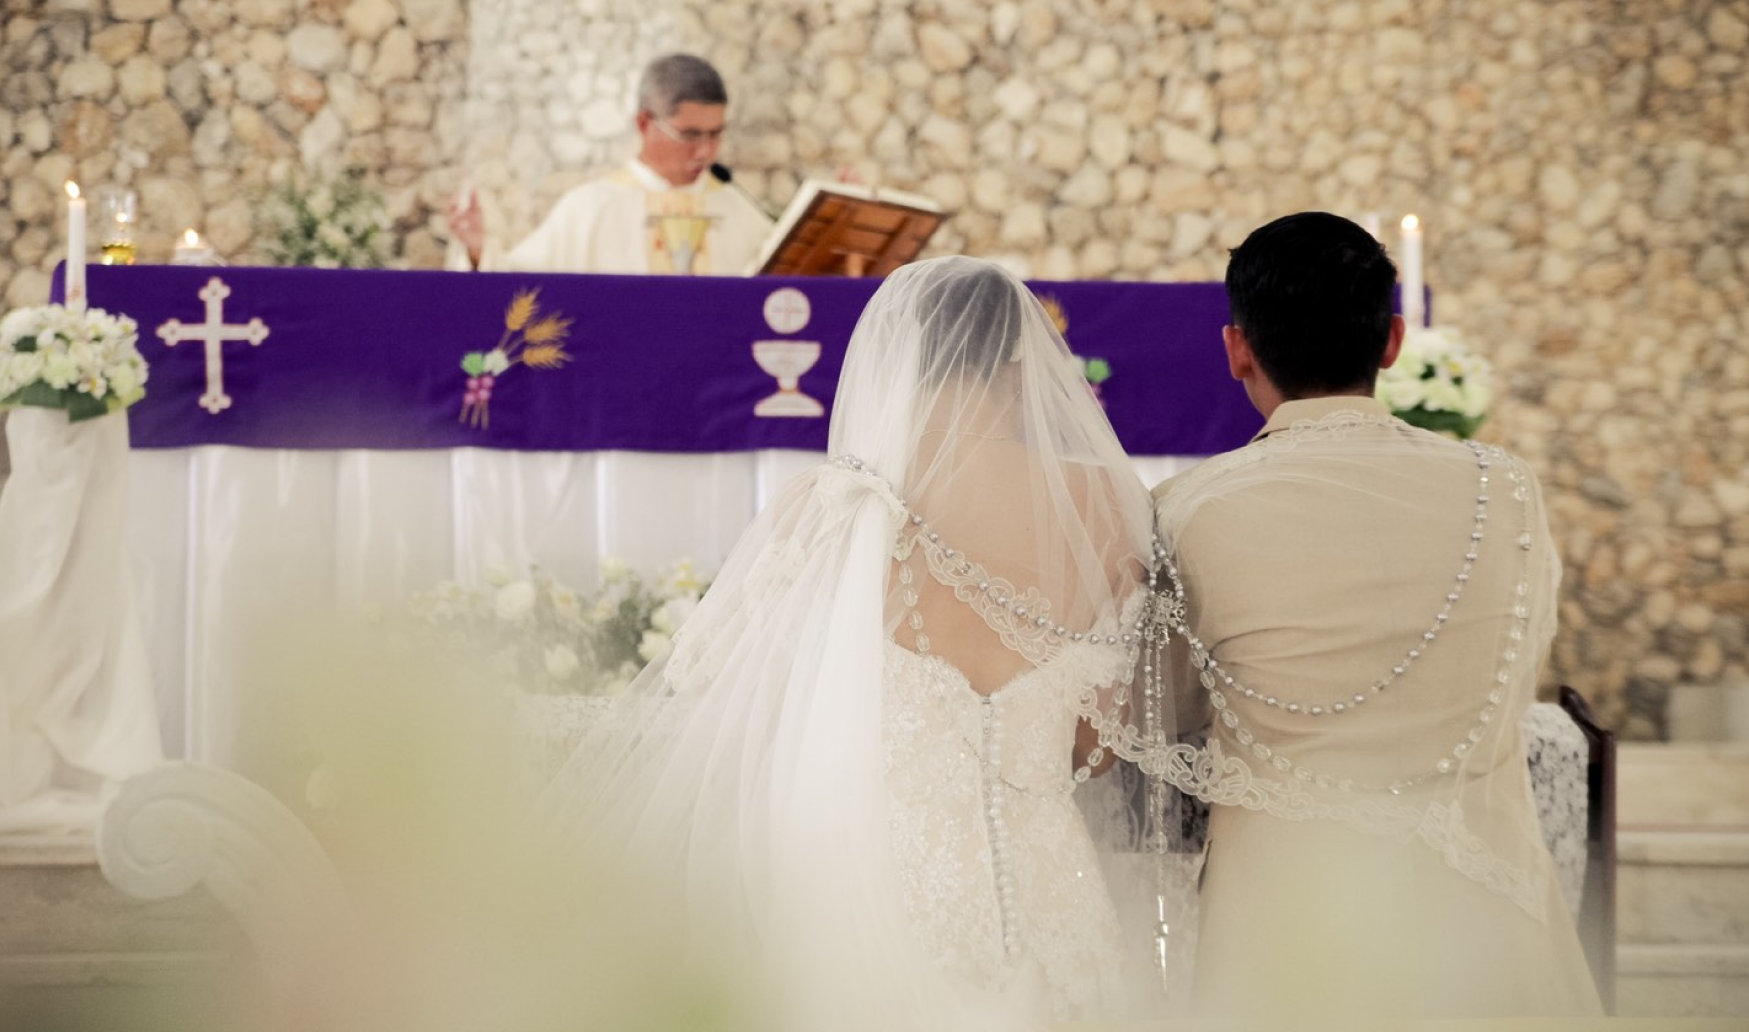 A wedding ceremony where the priest is delivering his message